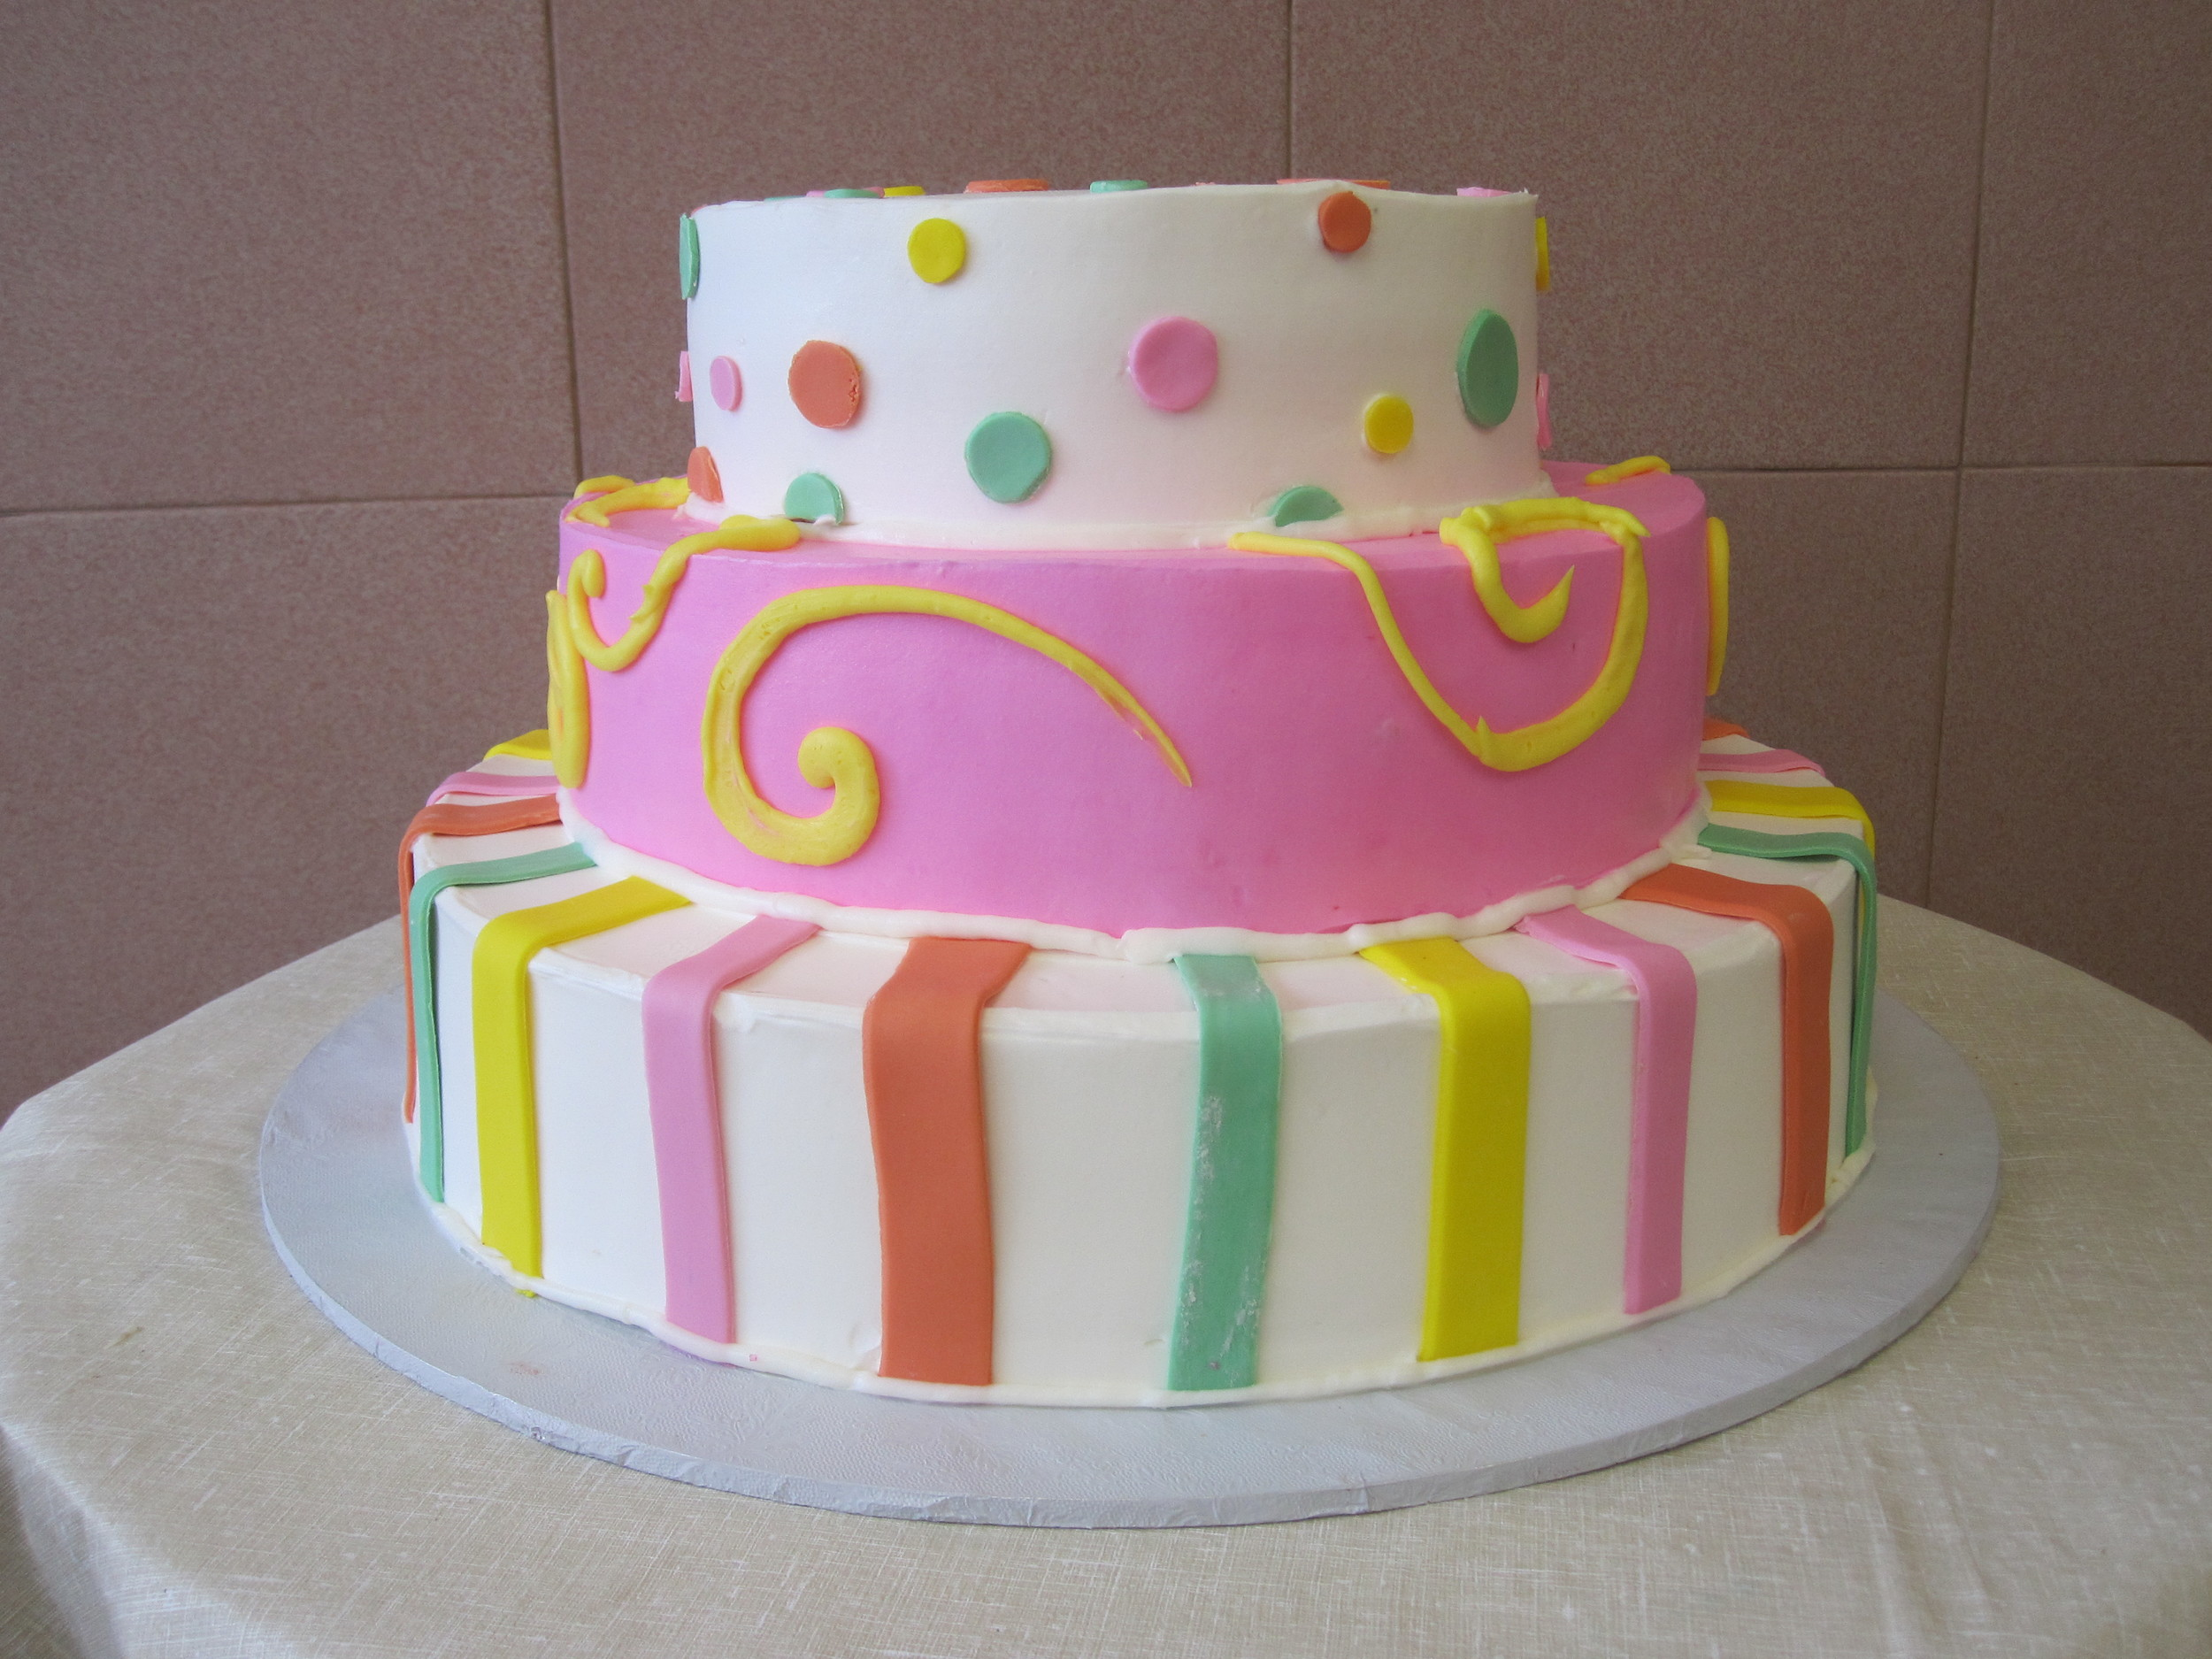 3Tier ButterCream.1st 3rd tier w stripes.polkadots. 2nd rier colored buttercream